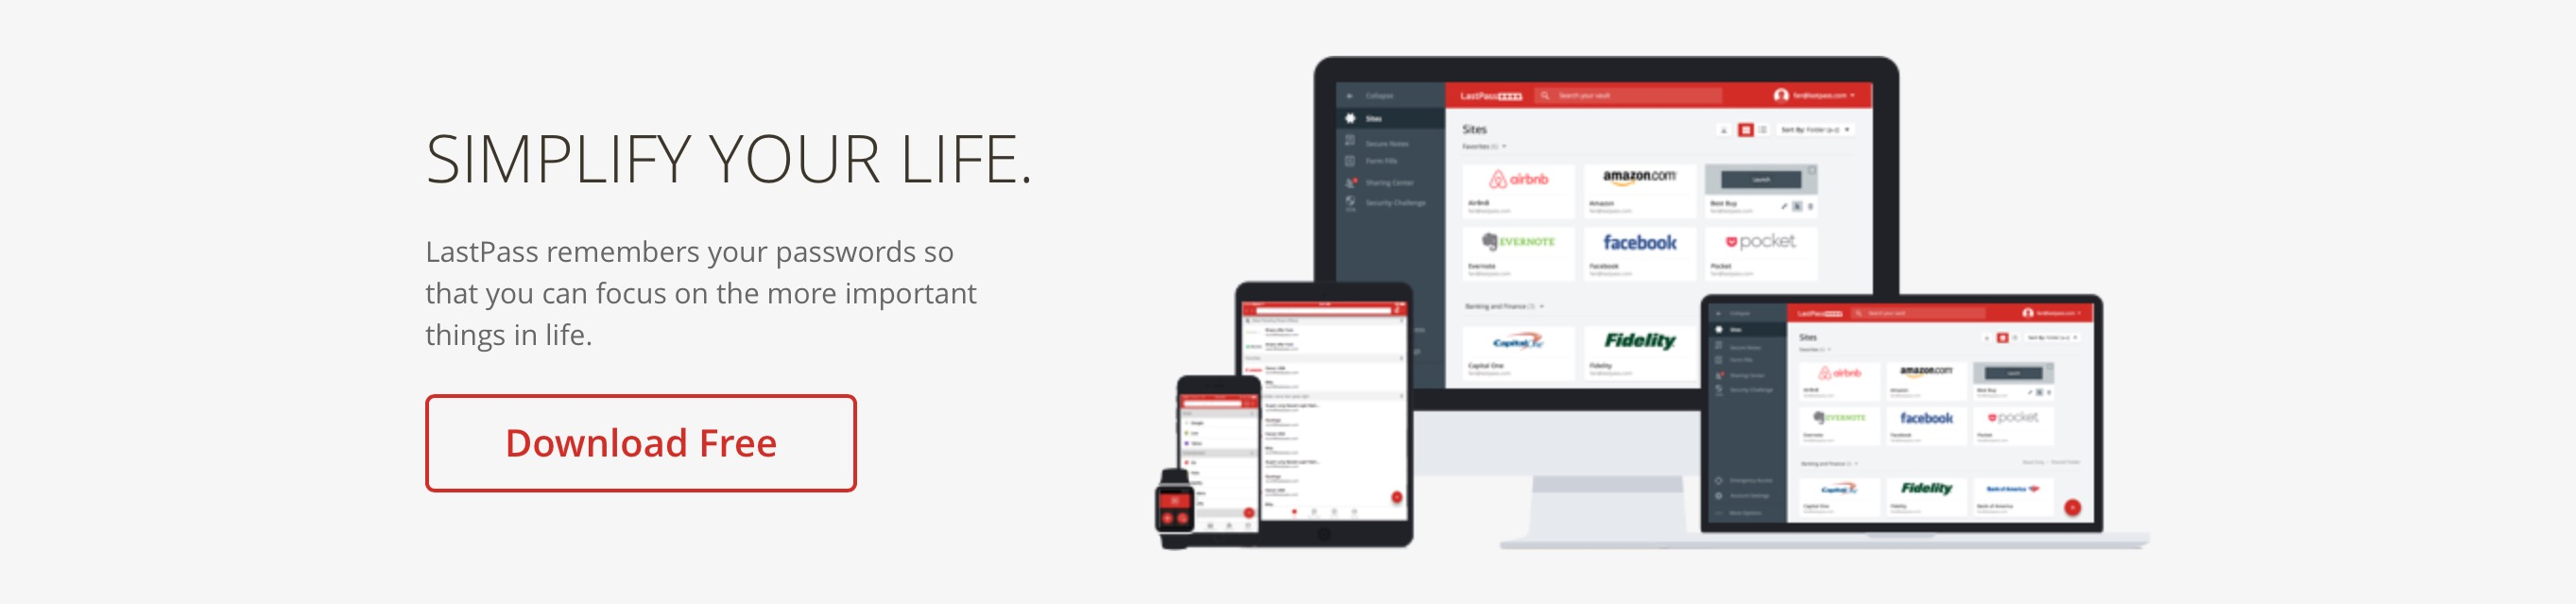 Even if you die, LastPass 4.0 has you covered